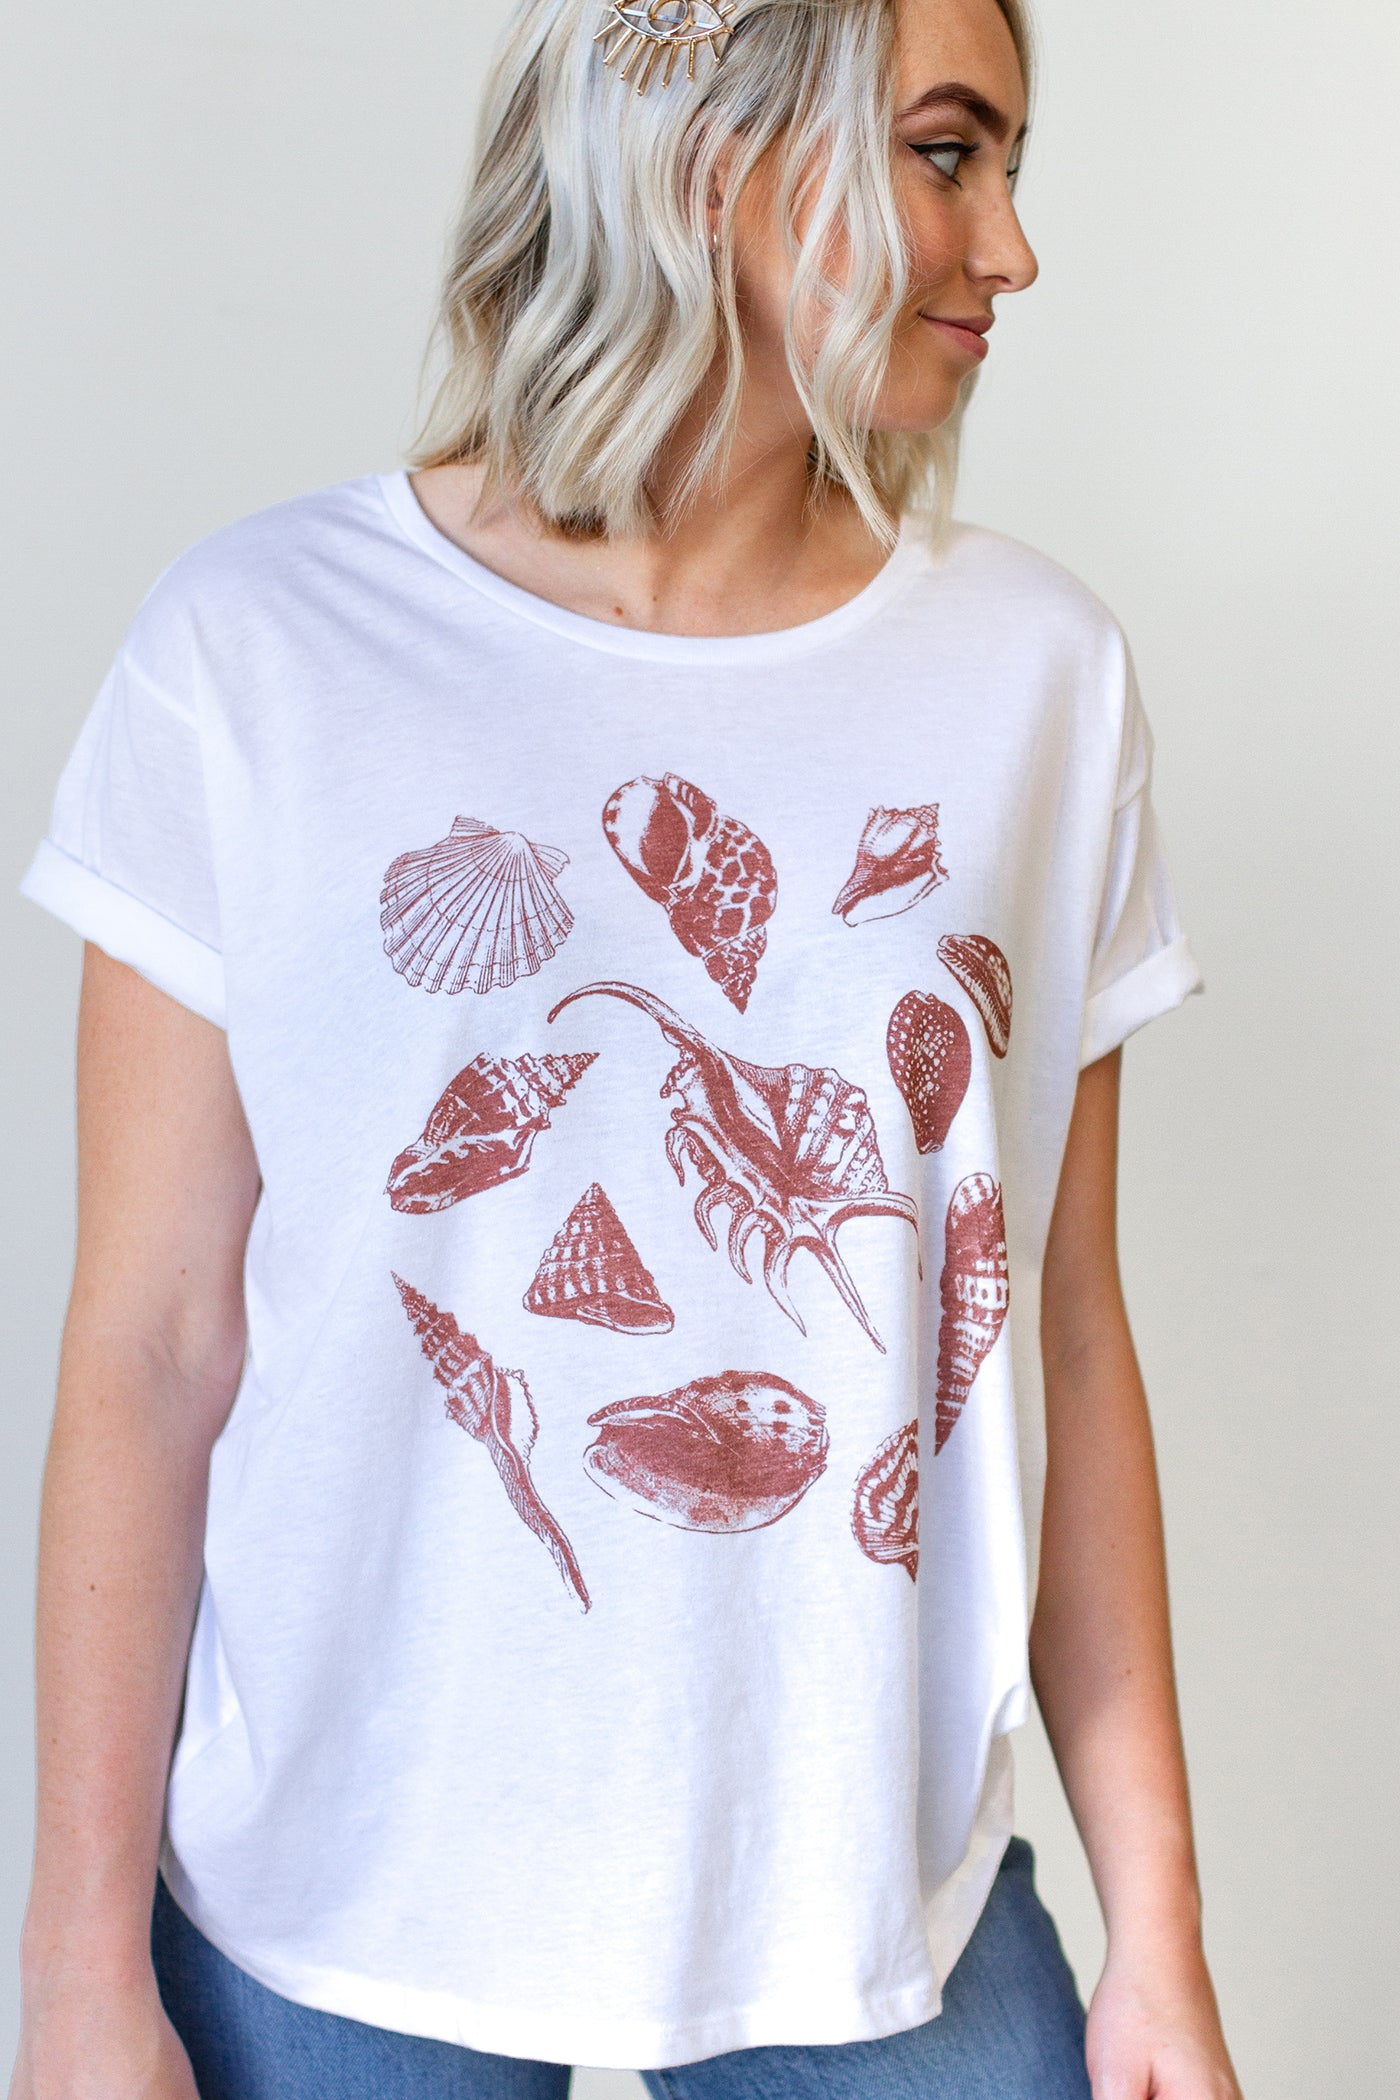 The Shells Top